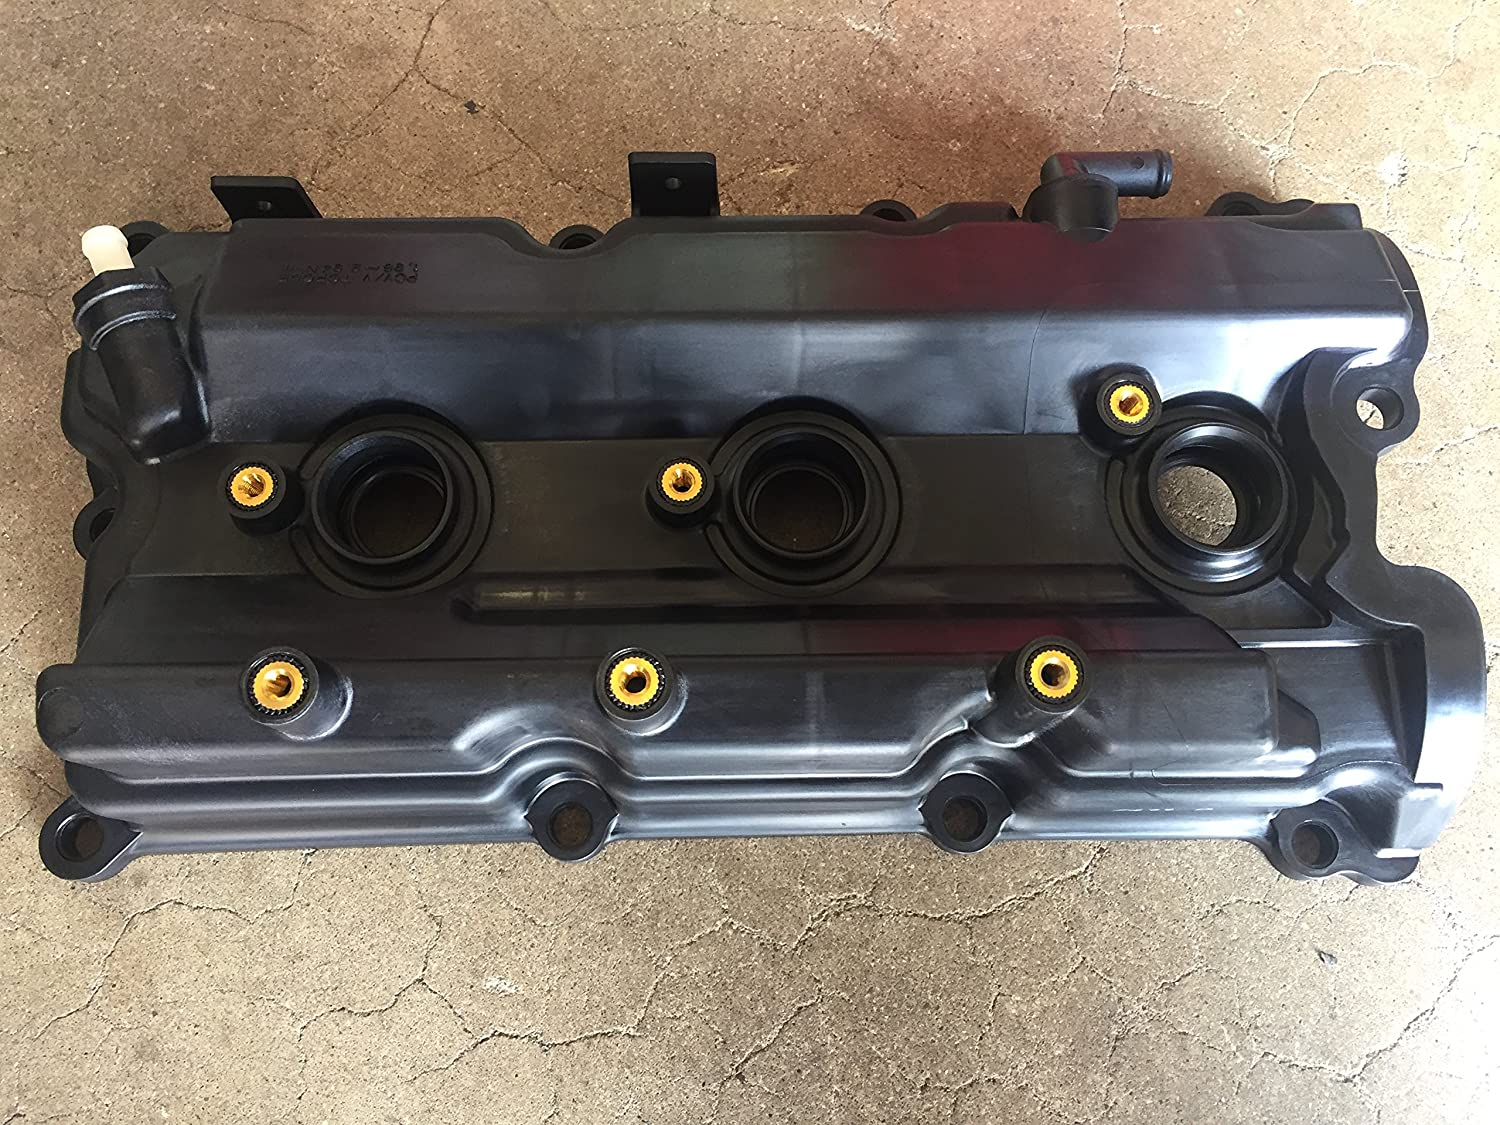 amazon com new oem nissan pathfinder 2002 2004 3 5 only right passenger side valve cover automotive new oem nissan pathfinder 2002 2004 3 5 only right passenger side valve cover